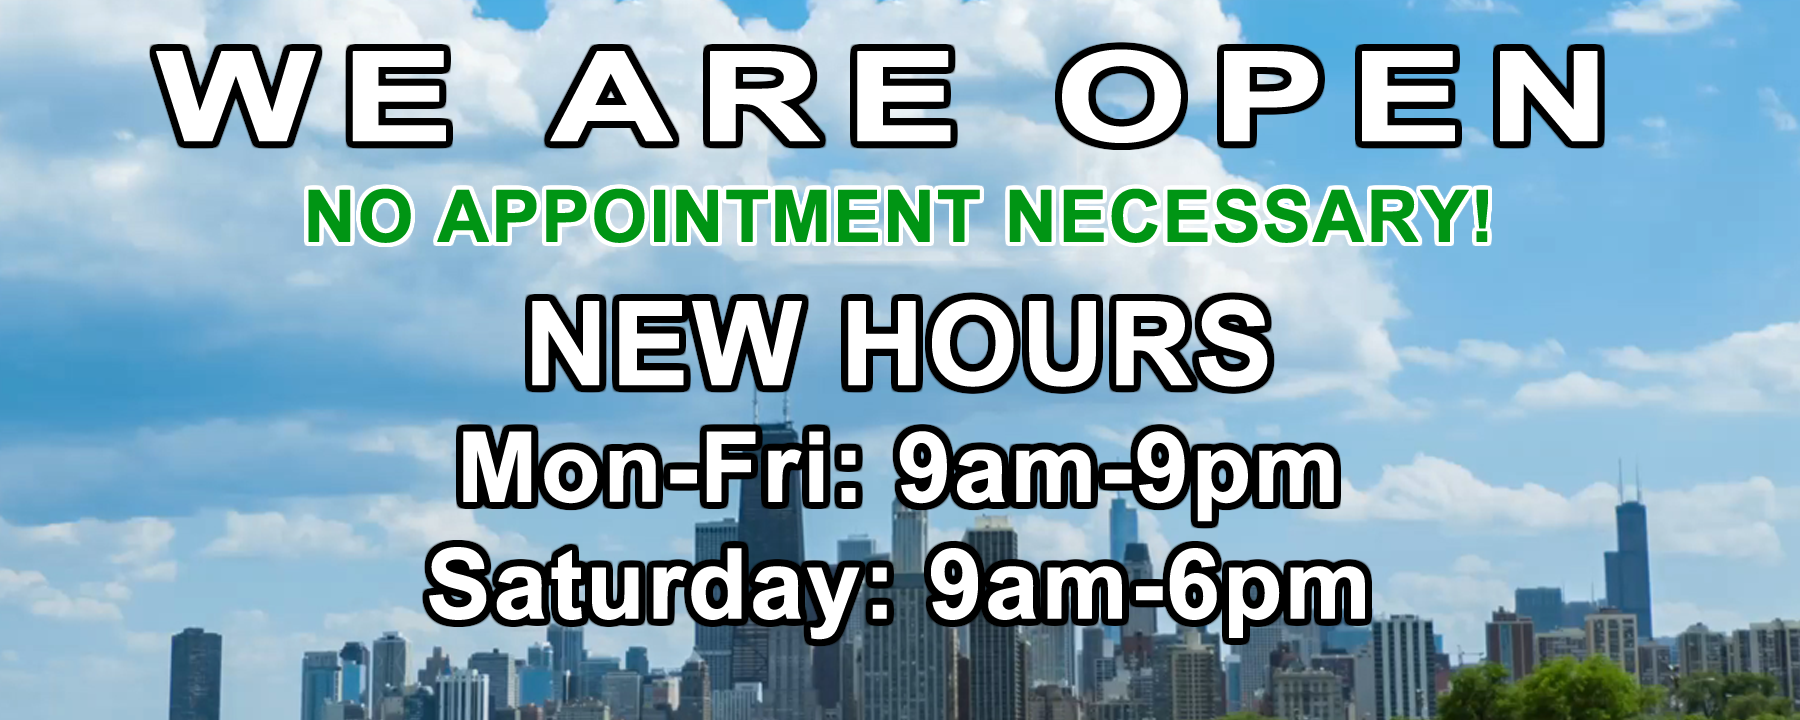 New Hours at Star Nissan